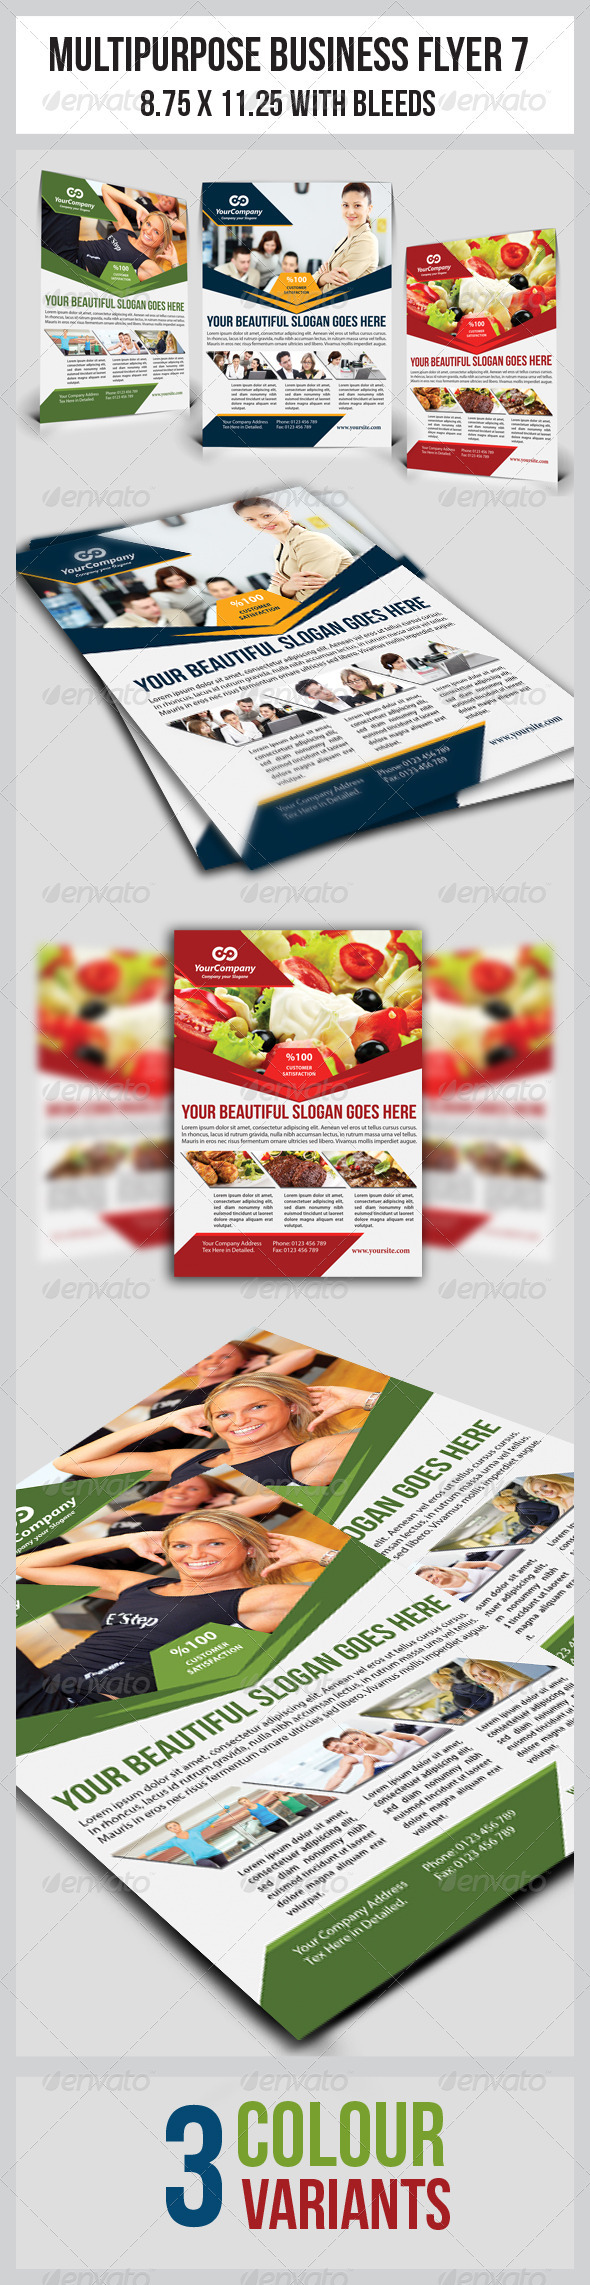 GraphicRiver Multipurpose Business Flyer 7 3515340